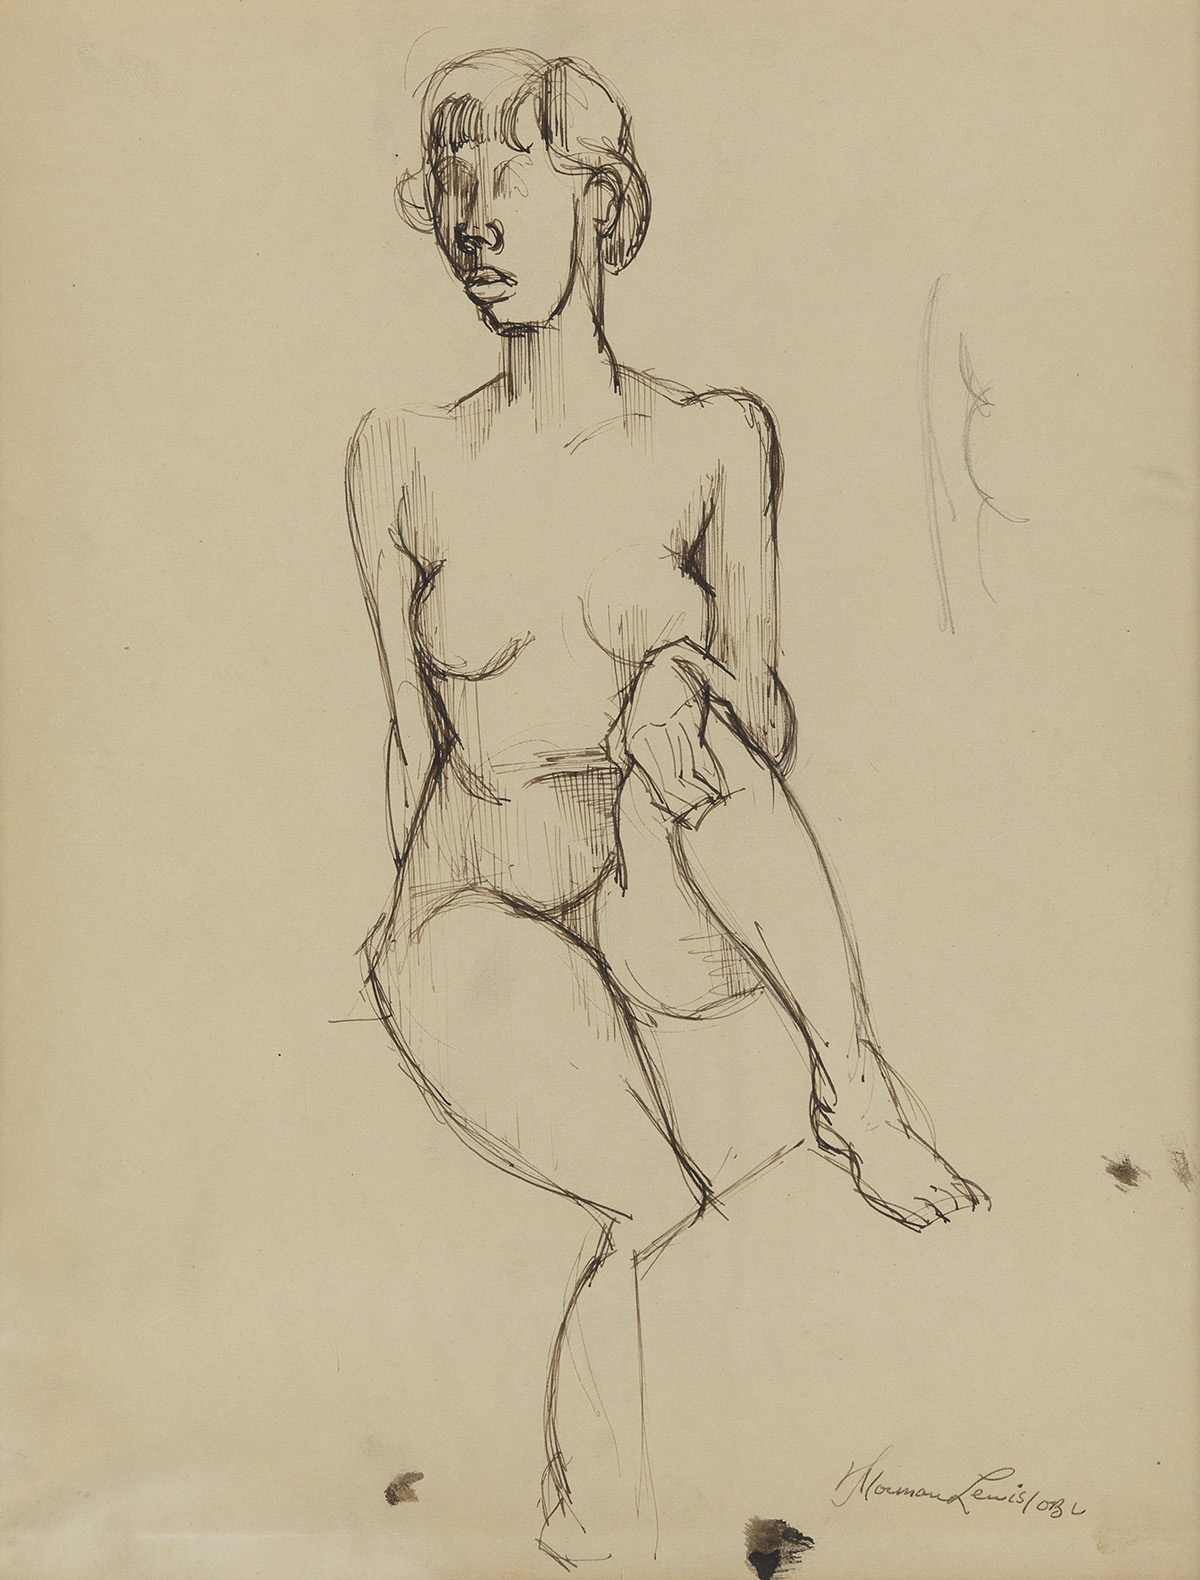 NORMAN LEWIS (1909 - 1979) Untitled (Nude Sketch).